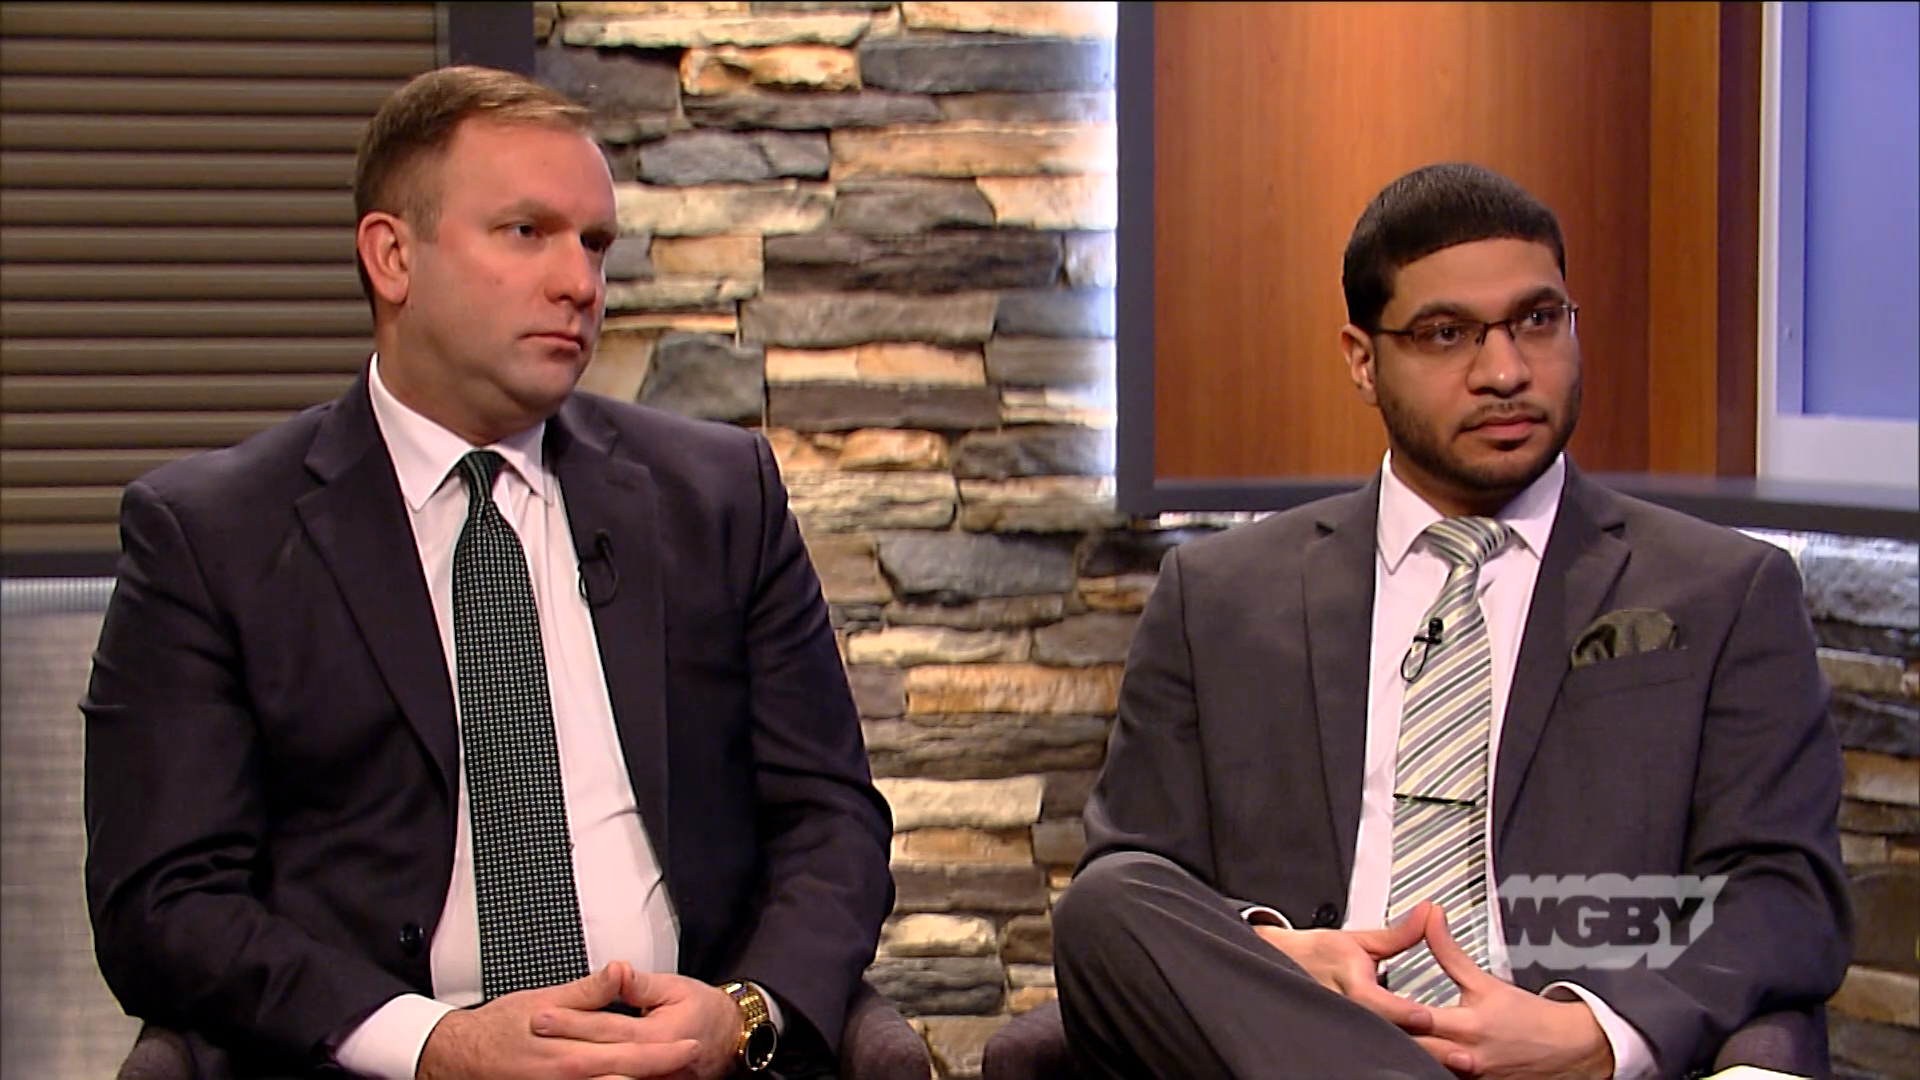 Springfield City Councilor Orlando Ramos & Daniel Morrissey discuss the MGM Community Advisory Committee & the impact of MGM Springfield on the community.